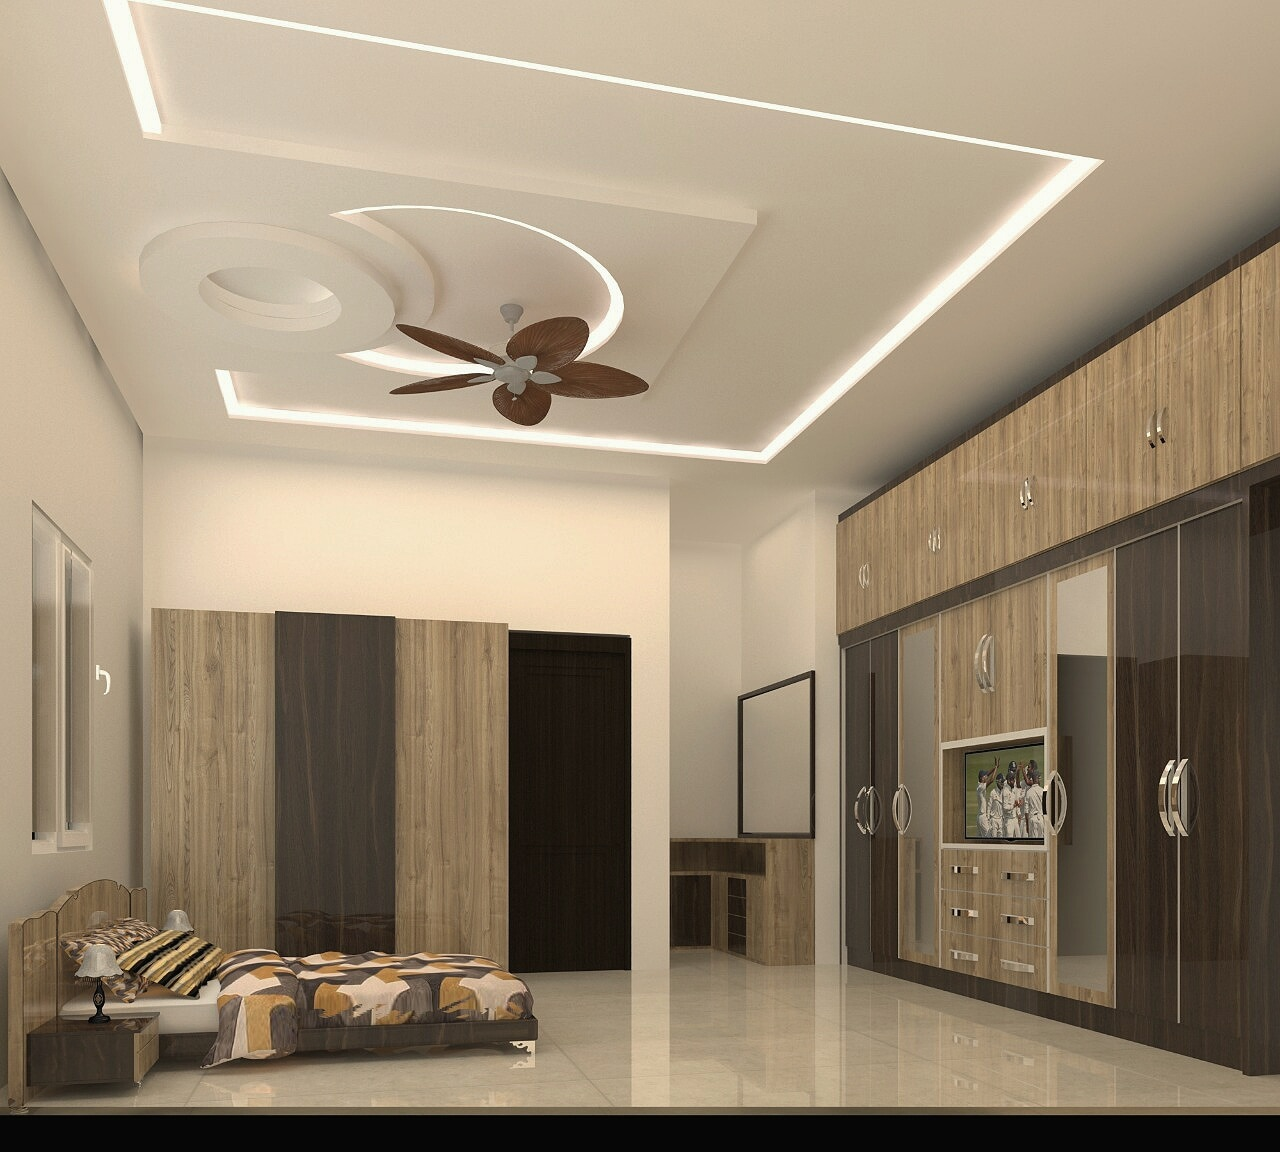 Regalias Interio, An ISO 9001:2015 Certified , a full-service interior design firm is based in Hyderabad. Regalias Interio is committed to design excellence, responsibility and sustainability. Dedicated to the creation of custom interiors, the company prides itself on combining architecture and interior design to find unique and aesthetically pleasing solutions. Regalias Interio completes projects tailored to the individual styles and needs of its clients, on budget and on time. Ramana Murty - Proprietor  Ramana Murty brings his expertise in Modular construction and renovation to the firm. Also born and raised in Hyderabad, he spent 15 years working for a Interior and Modular Infrastructure company in Higher Management, during which he oversaw the renovation of one of the city's premier landmark buildings. He is a graduate of Nizams in Hyderabad.   Ramana murty offer a unique combination of architectural, design, engineering and construction knowledge. He enjoy working with new unusual materials, and take pride in staying current with the latest Products / Services and technologies.